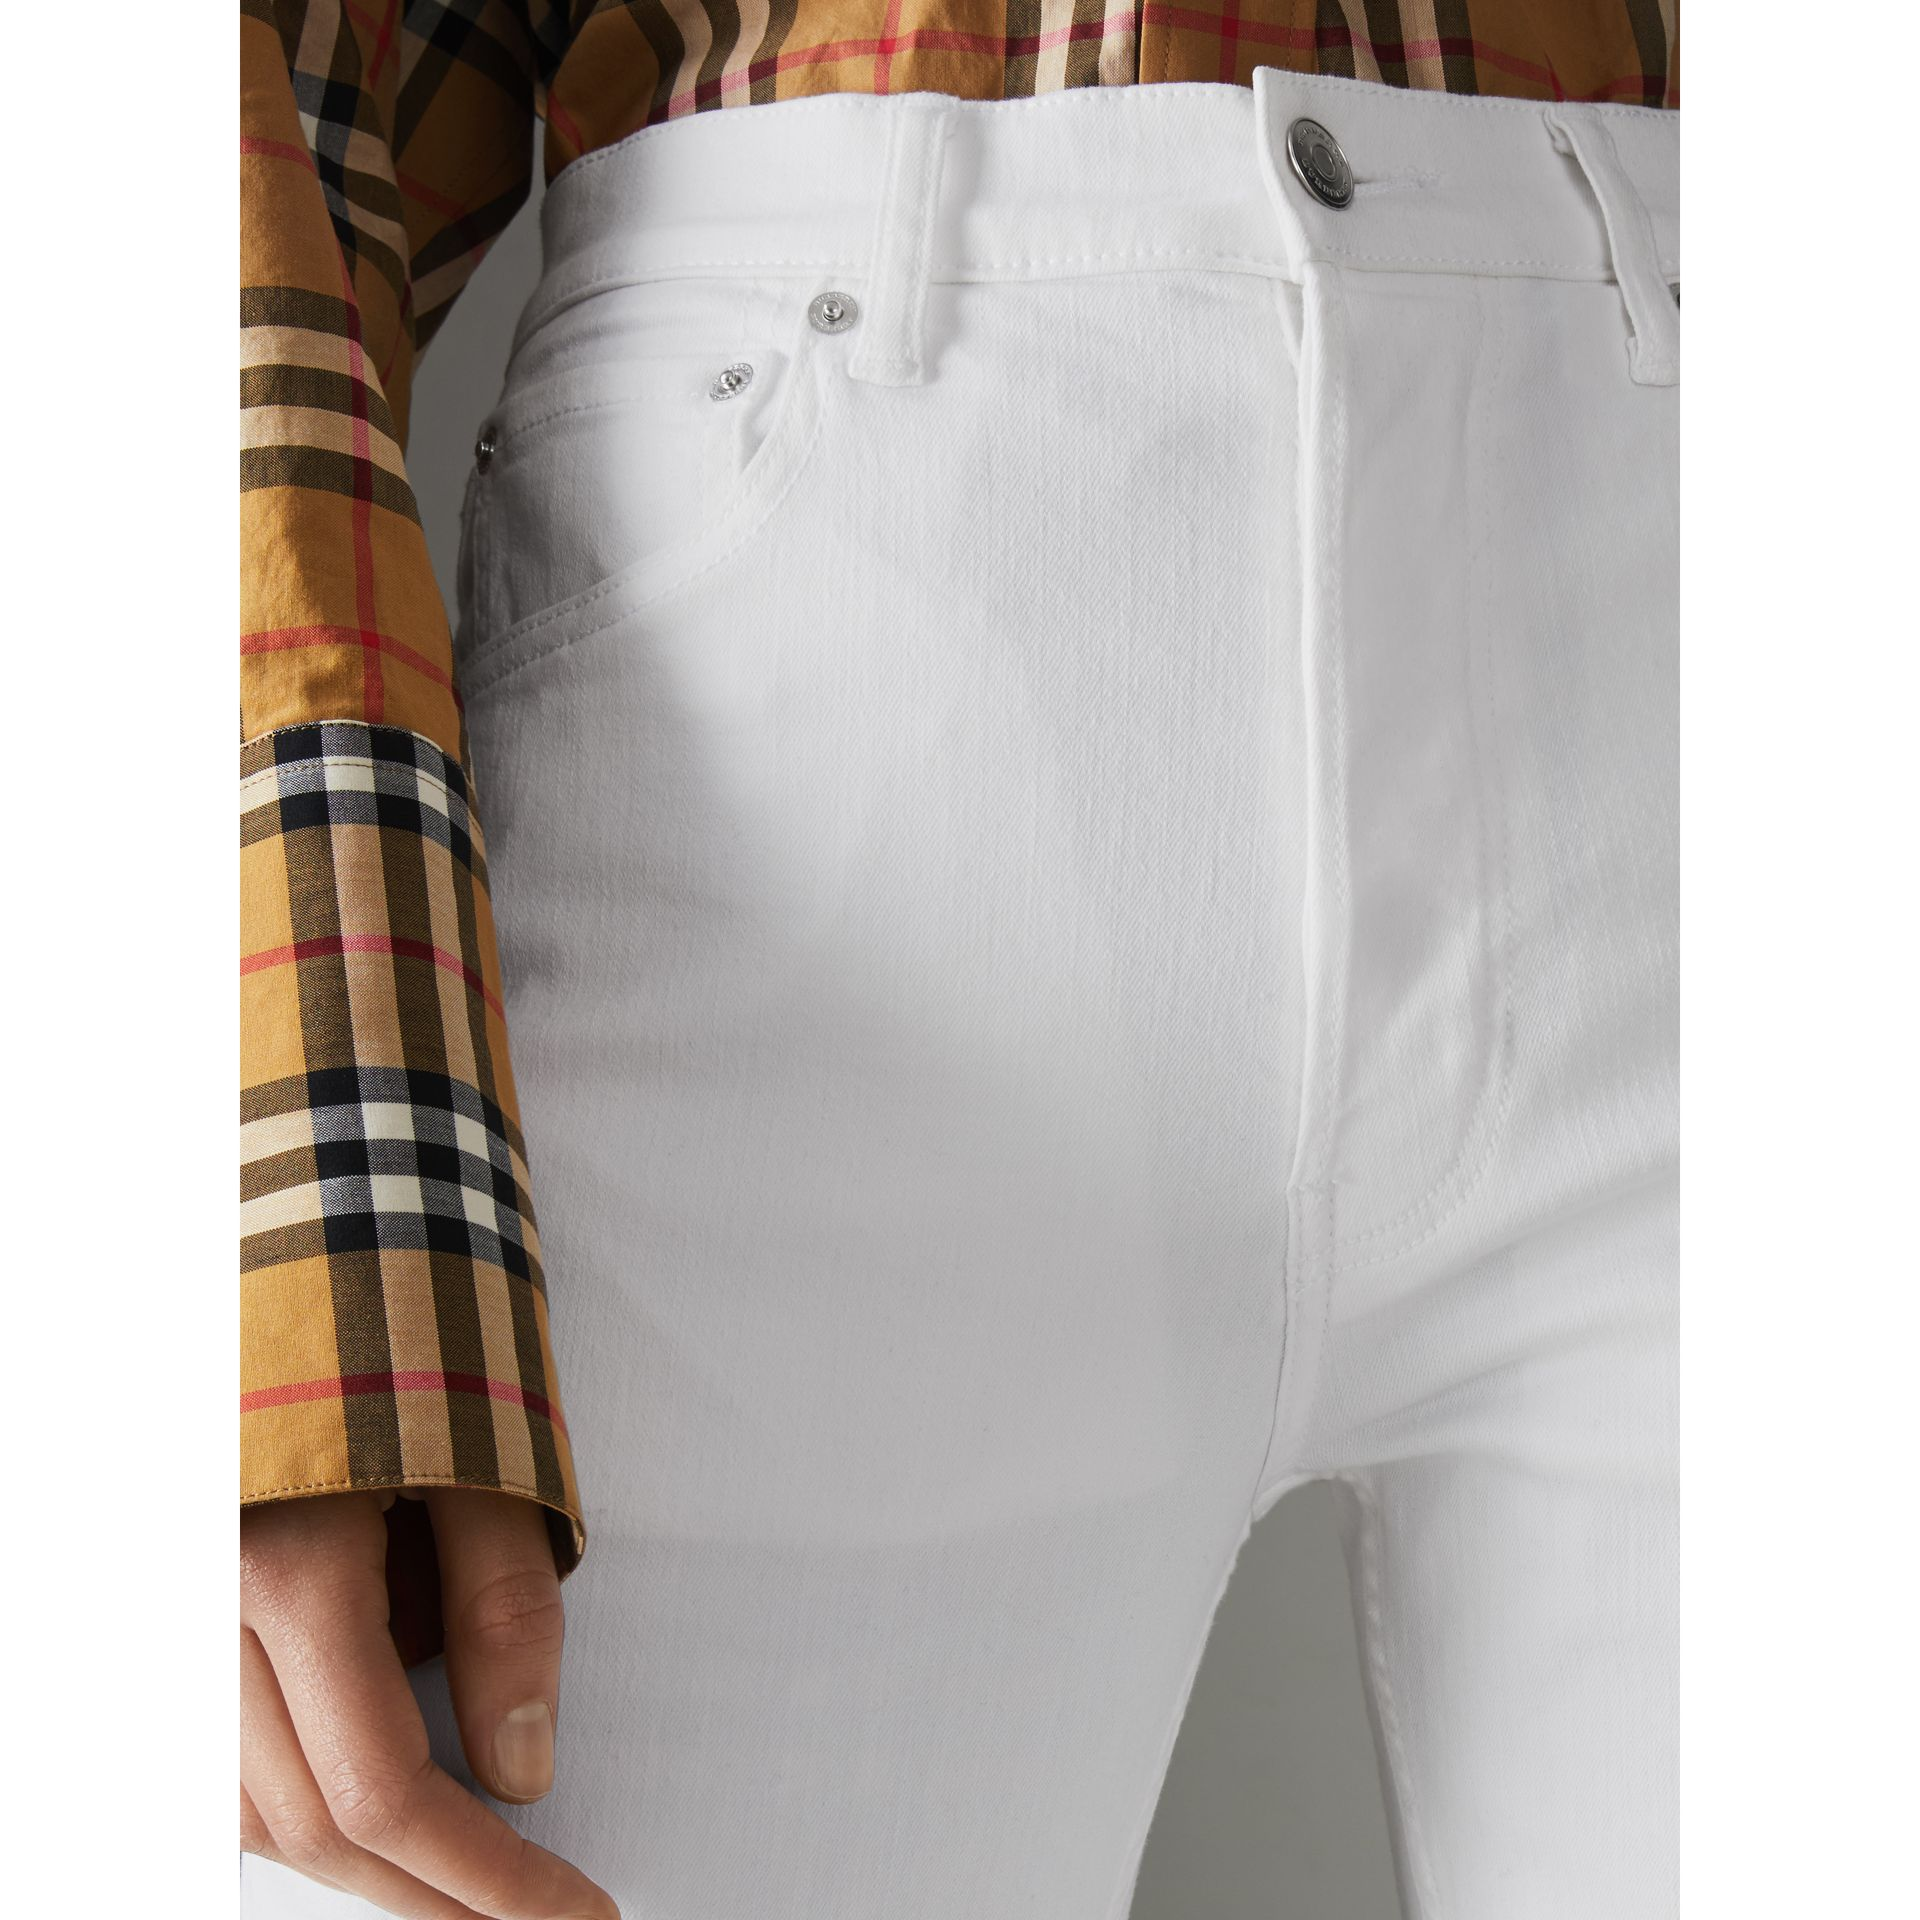 Straight Fit Power-stretch Denim Jeans in White - Women | Burberry United States - gallery image 1